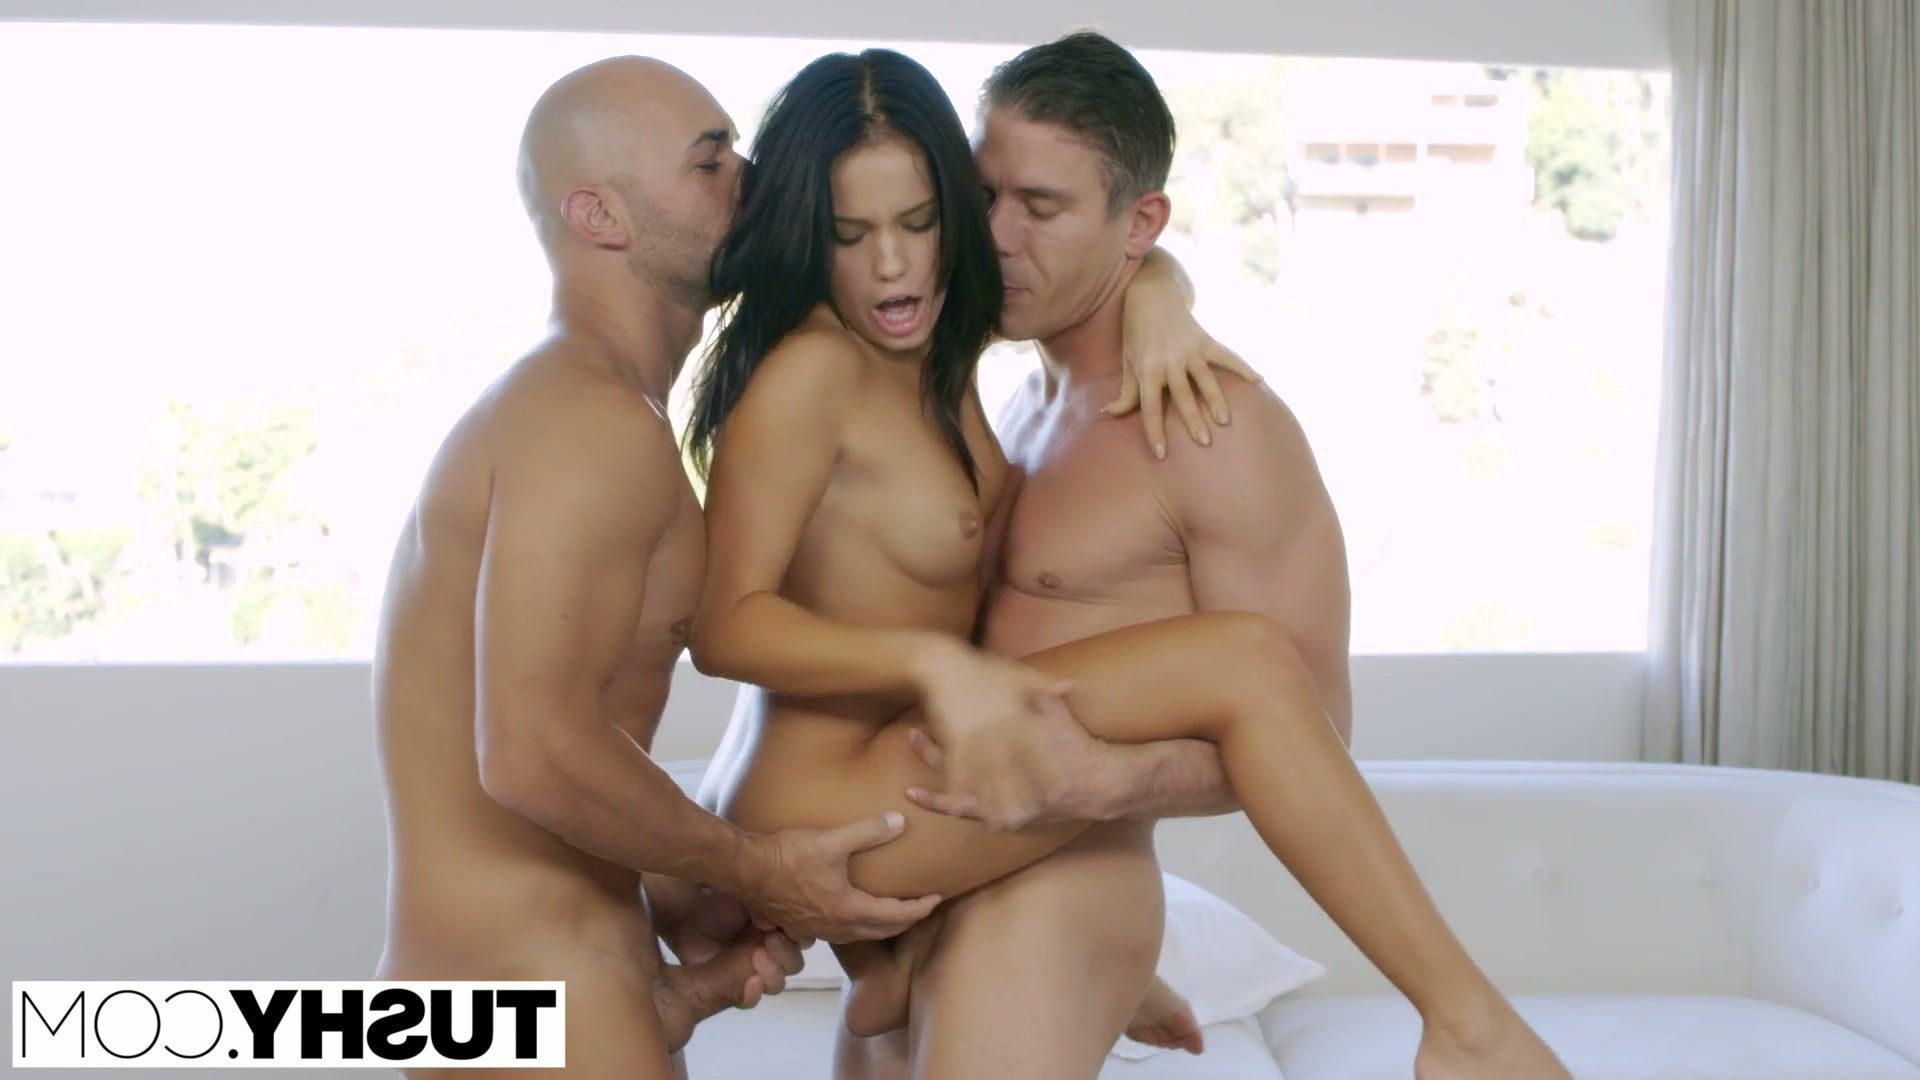 Courtney cox naked nudes